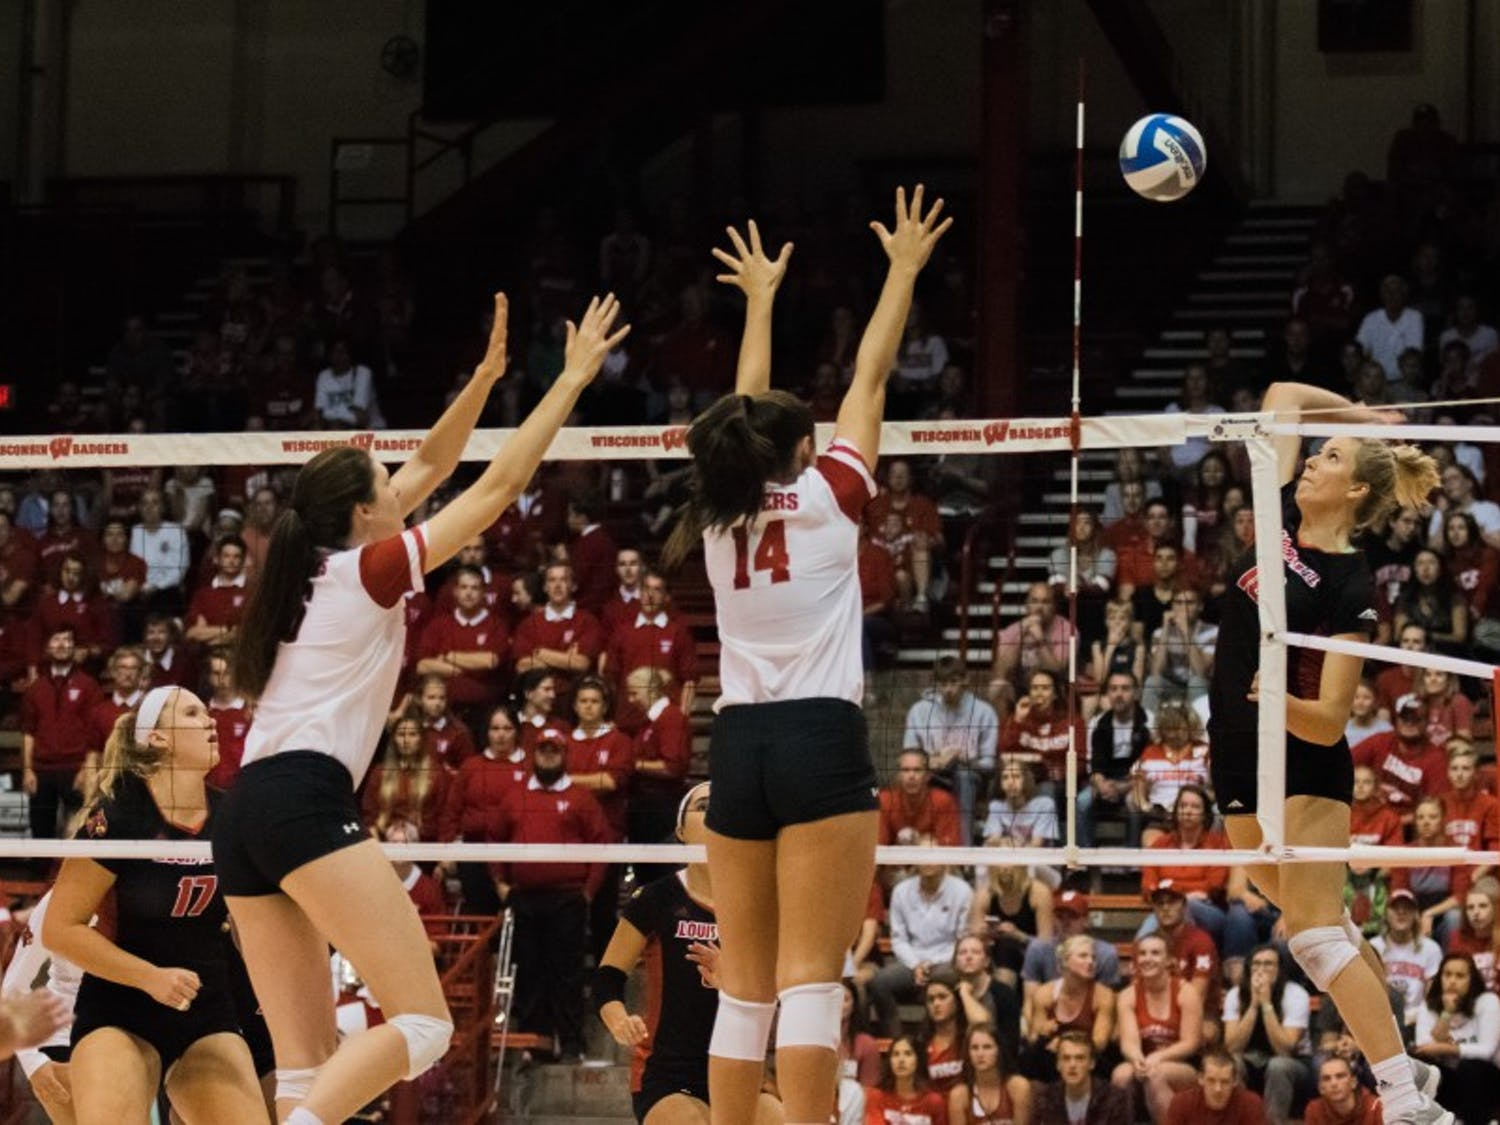 Wisconsin came dangerously close to losing its first set of the season Thursday night, but it held off a late Lipscomb push and swept the Bison in three sets.